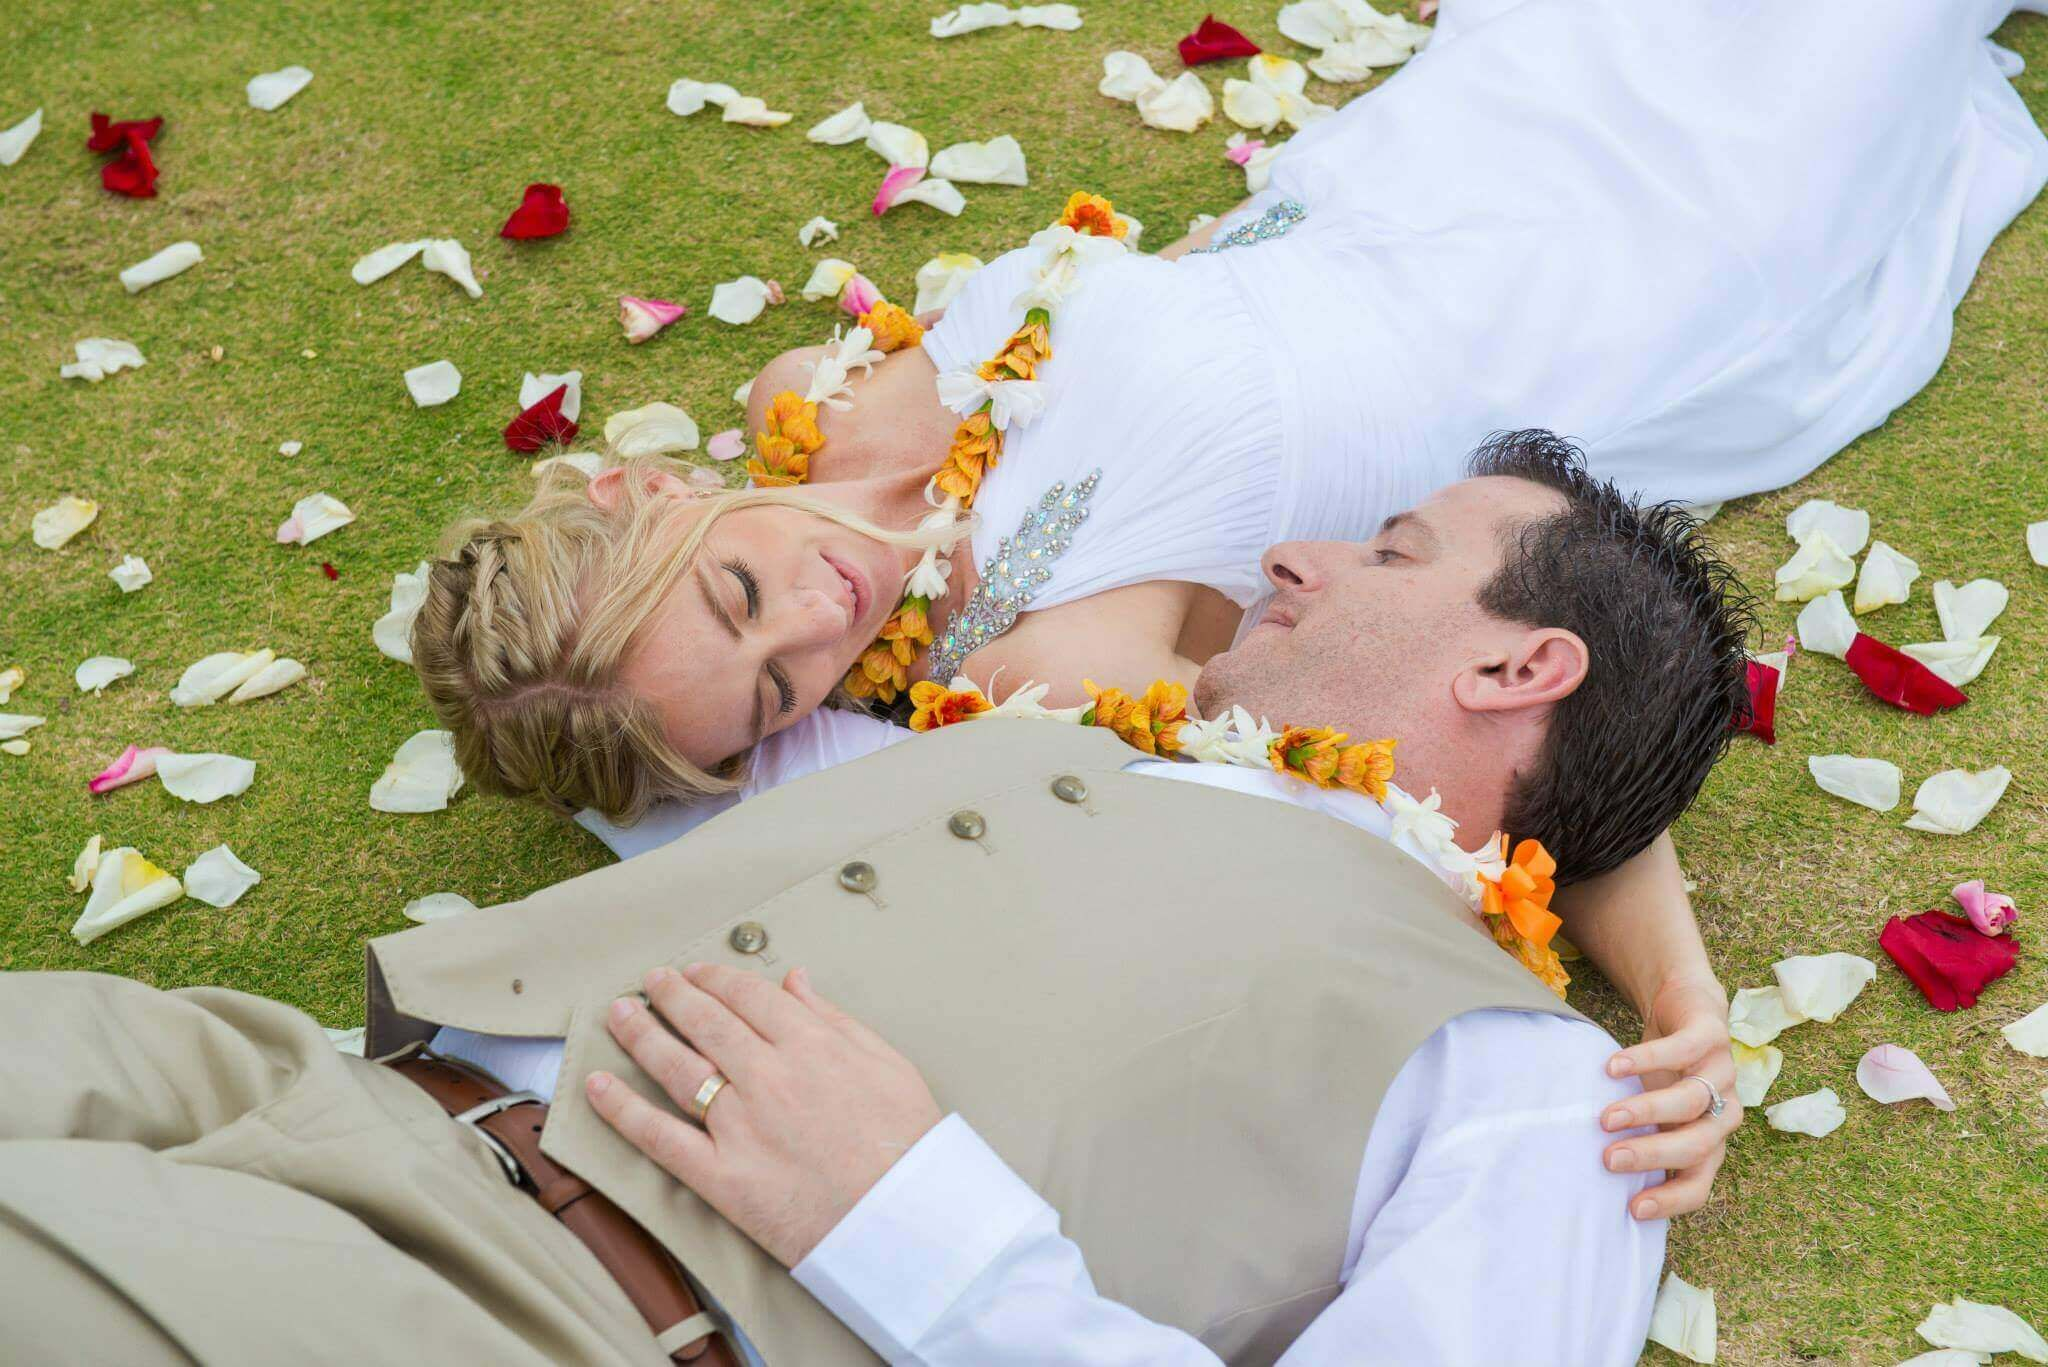 We specialize in Affordable, All Inclusive Hawaii Wedding